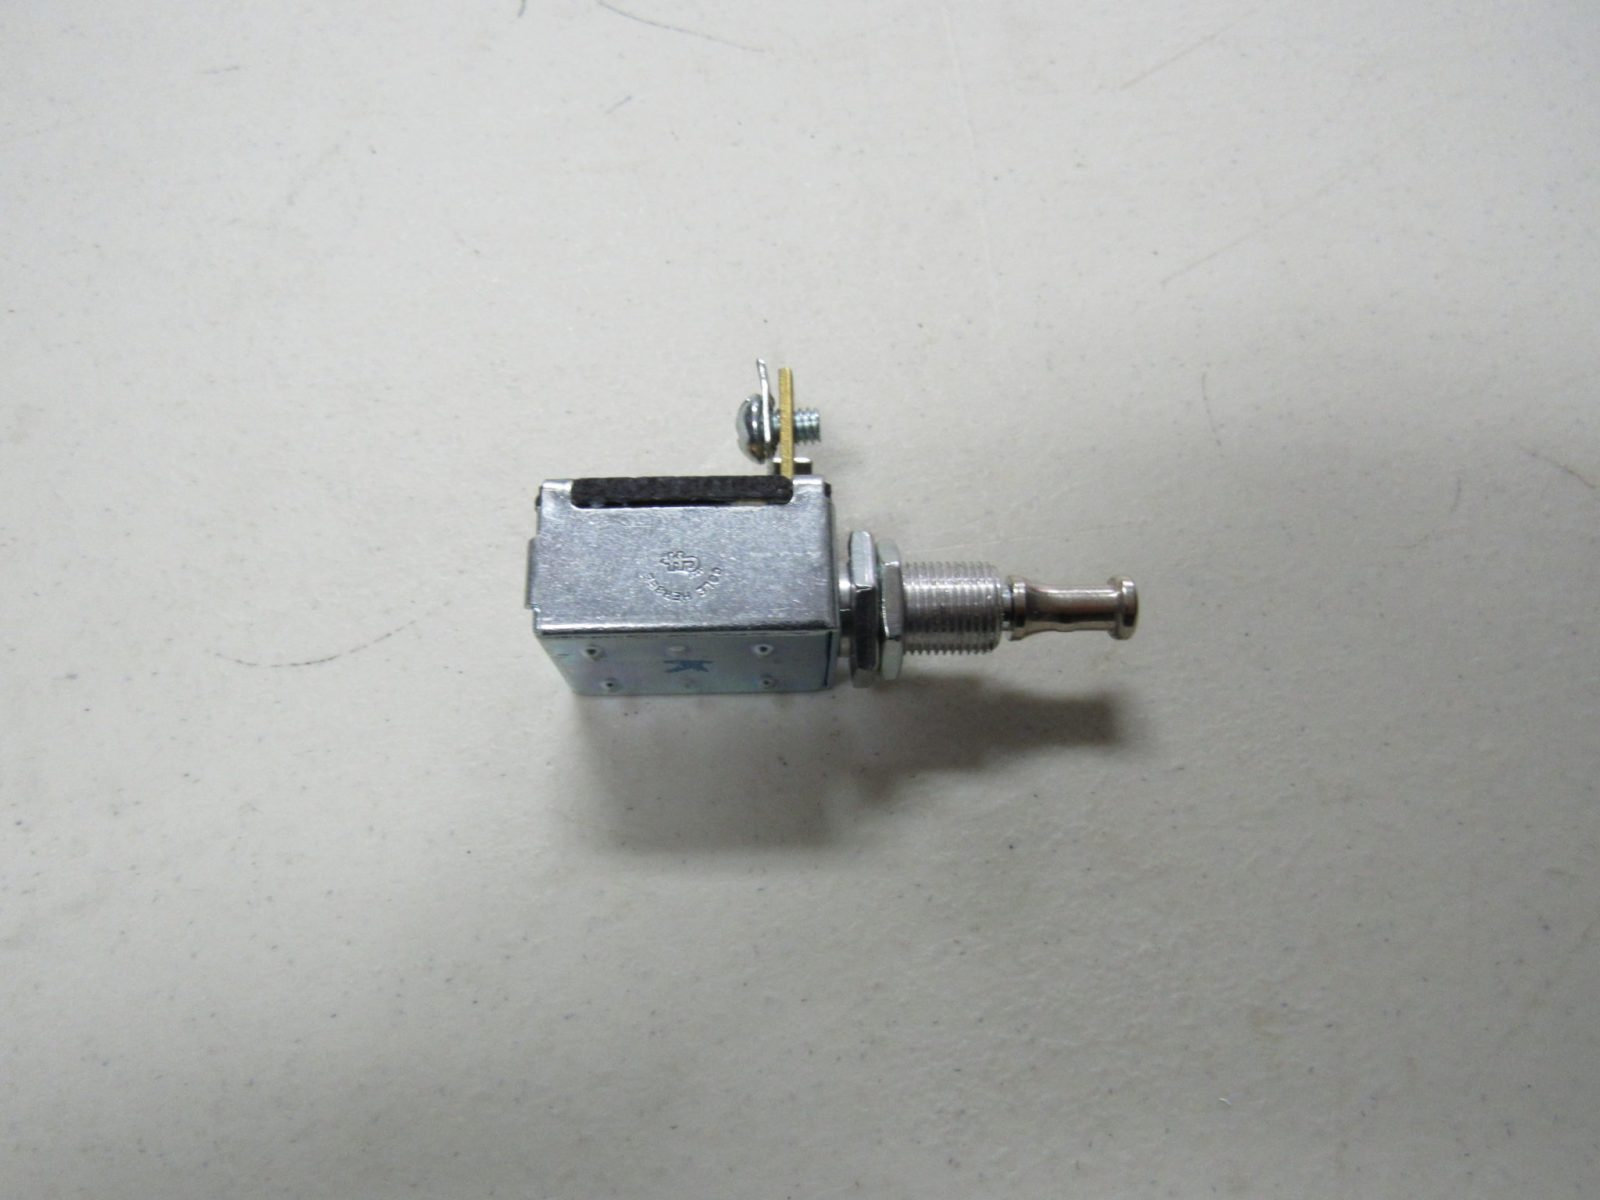 JOHN DEERE TRACTOR MAGNETO PUSH-PULL IGNITION SWITCH    9321